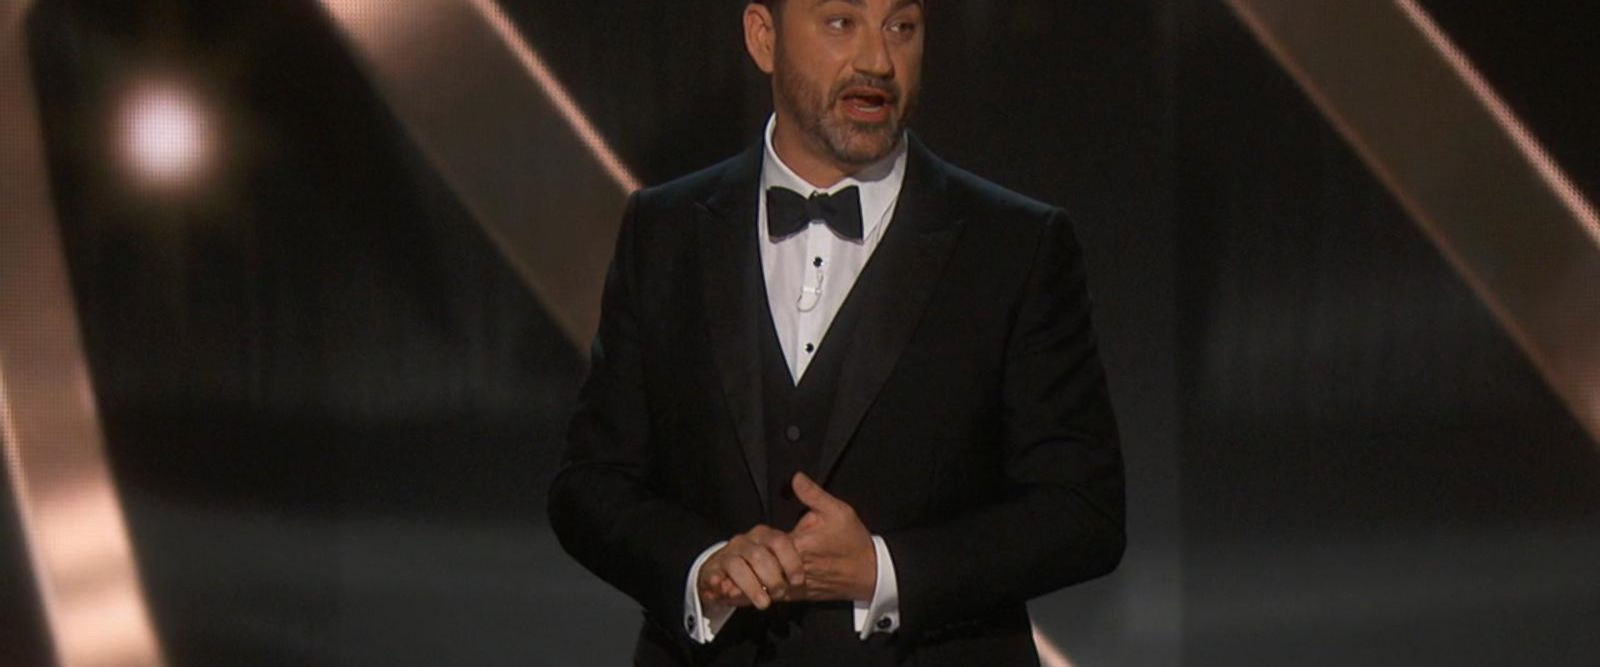 VIDEO: Hollywood and politics expected to collide at the Oscars